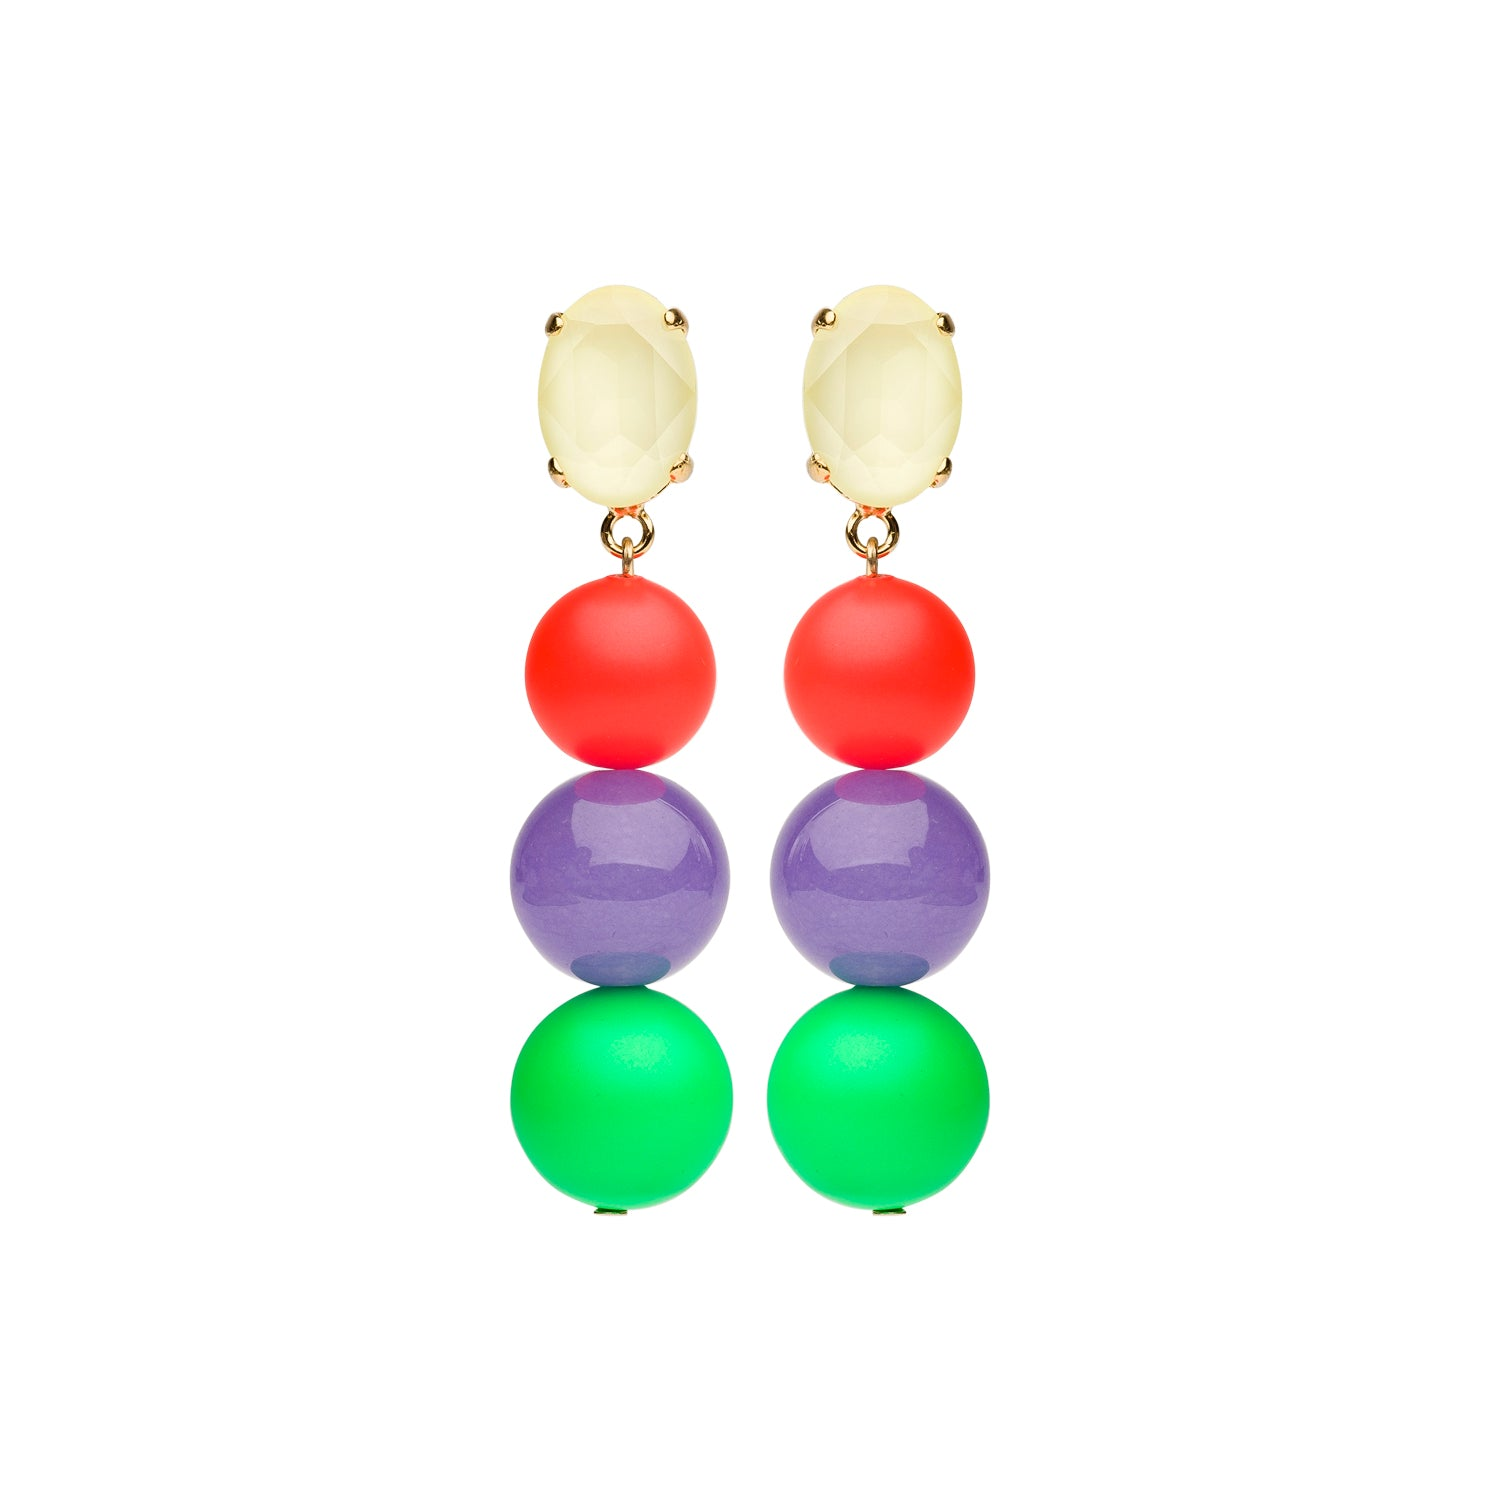 Neon earring green